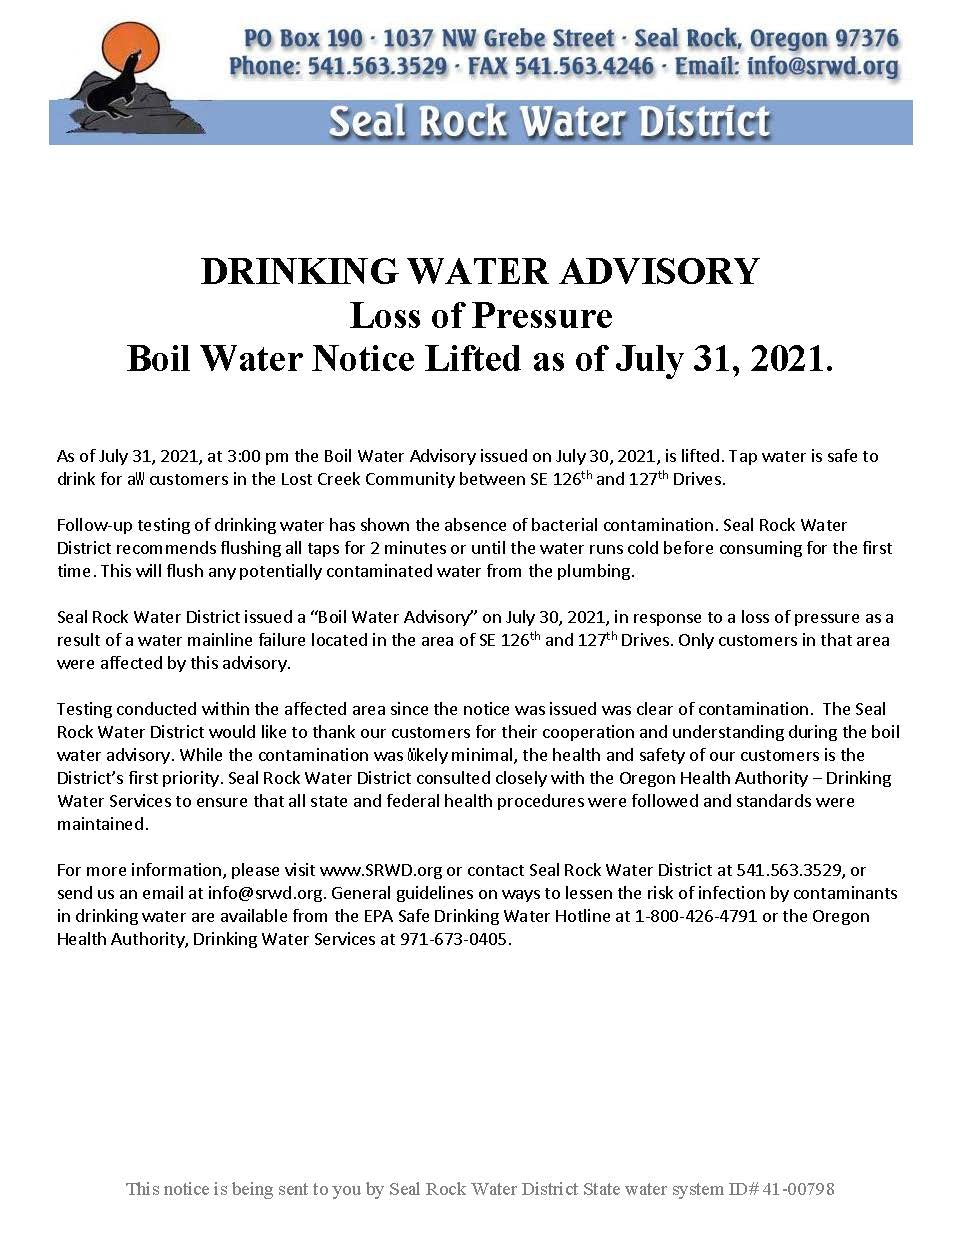 Image of Boil Water Notice Lifted 7/31/2021 for the Lost Creek Area